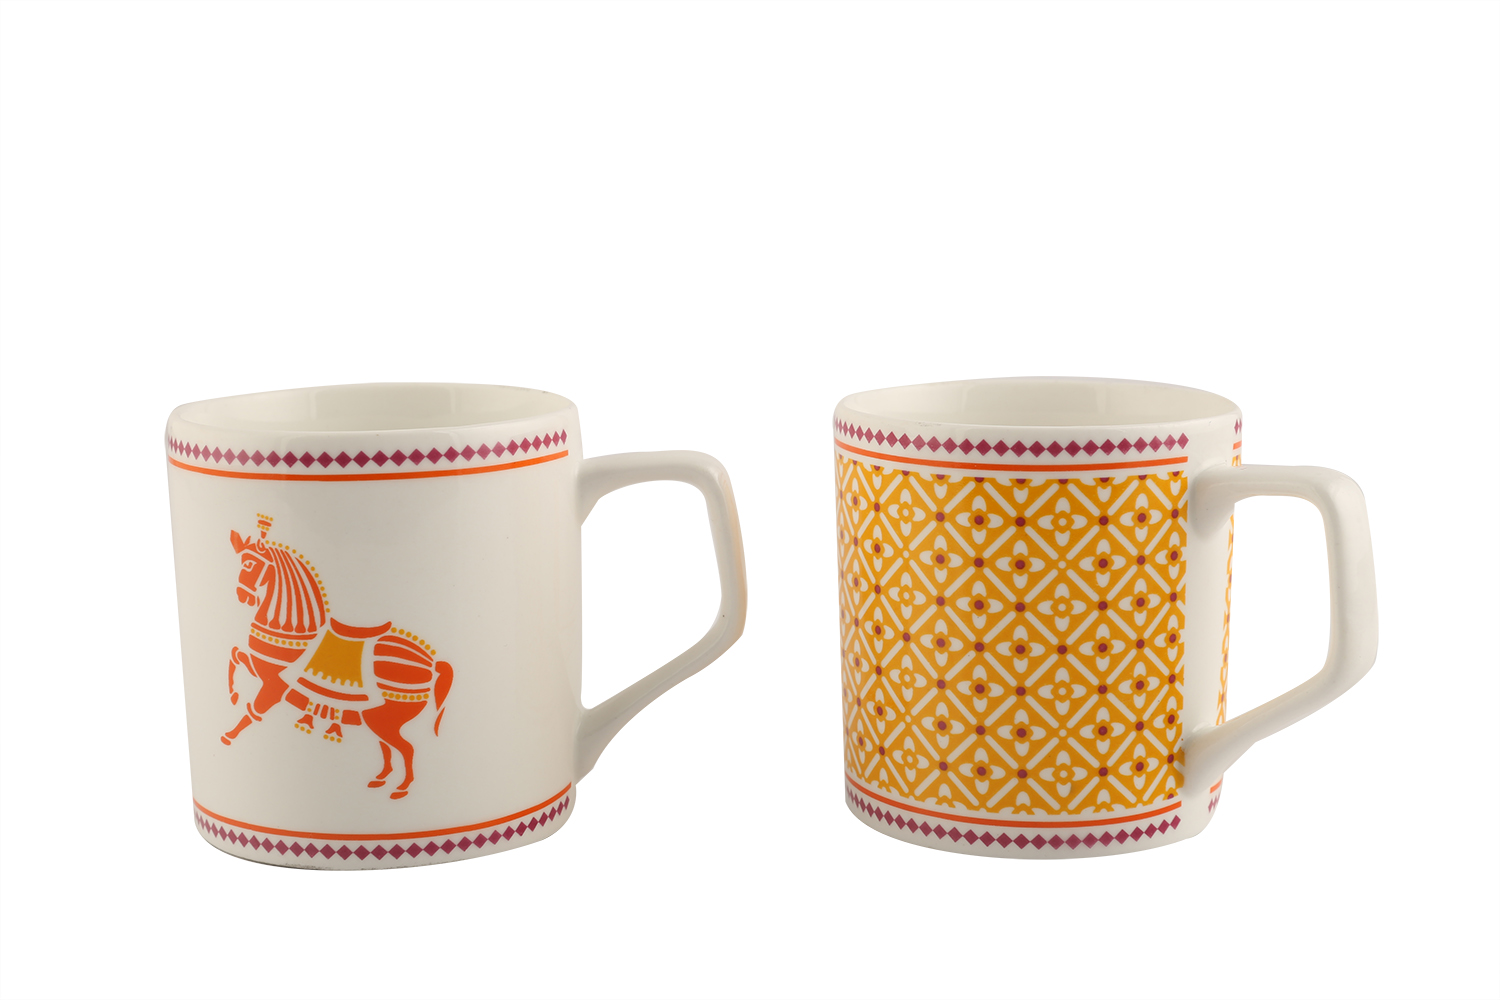 Horse Lattice Set Of 6 Tea Mugs Ceramic Tea Mugs in Yellow And Pink Colour by Living Essence